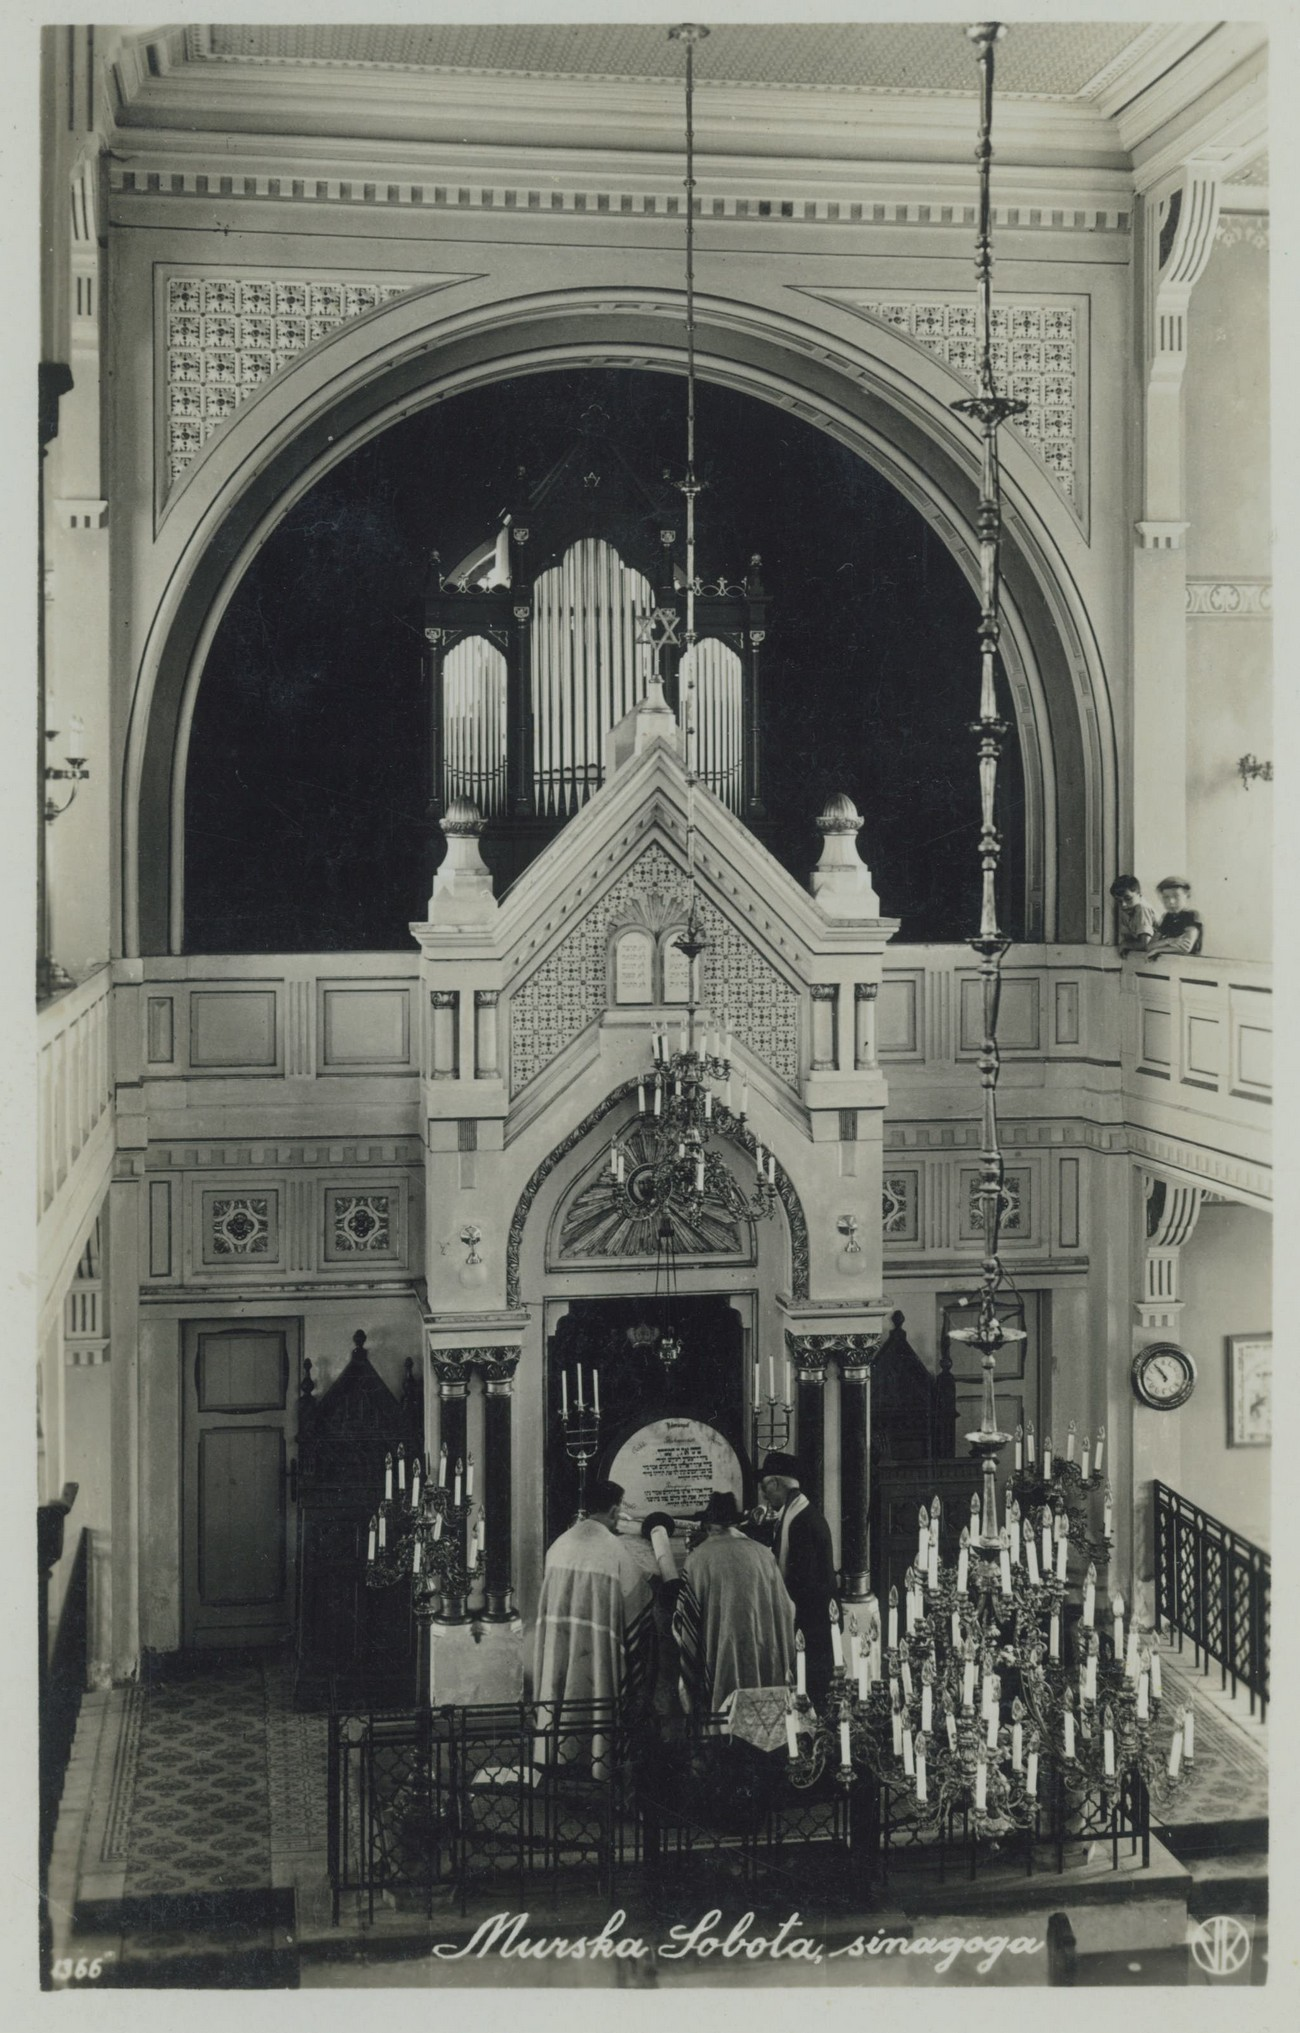 The interior of the Murska Sobota synagogue, or more precisely, the Israelite temple, built in 1908 but demolished in 1954 by local communist authorities. The photograph is kept by Bojan Zadravec.